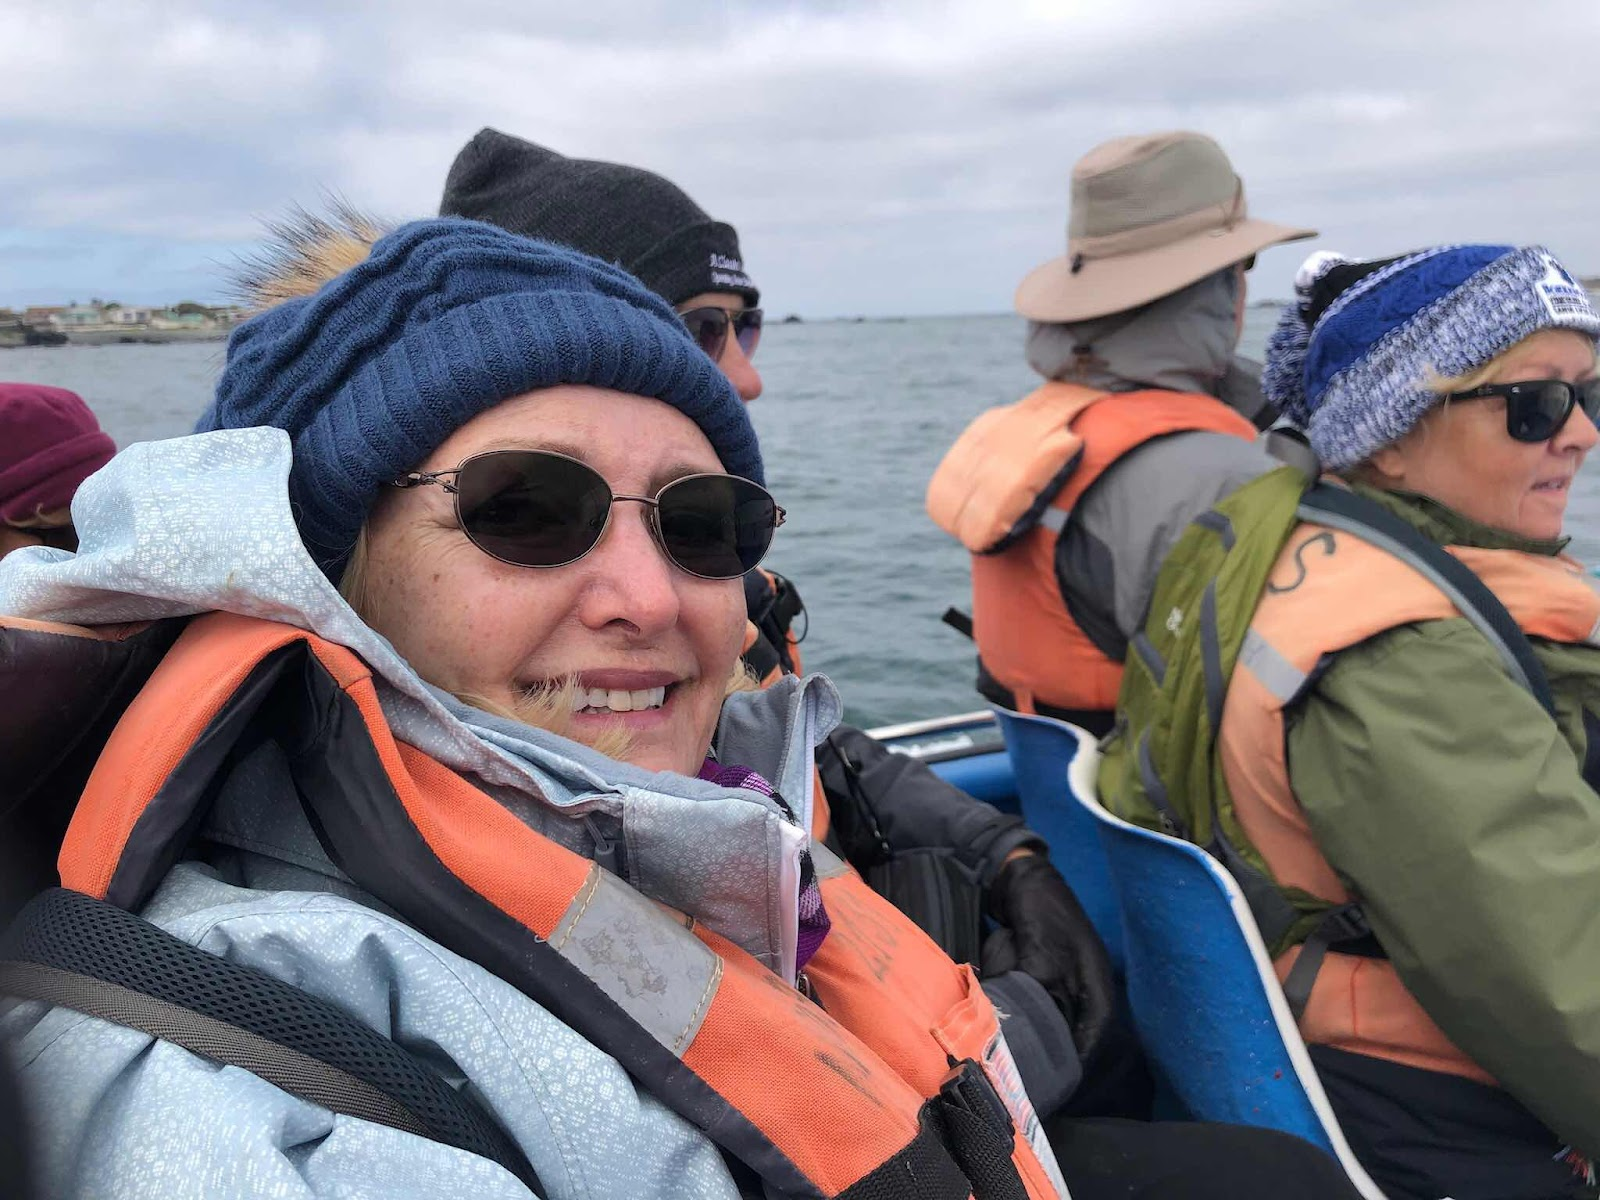 Resident Astronomer Peggy enjoying the boat ride to Isla Damas (Source: Palmia Observatory)